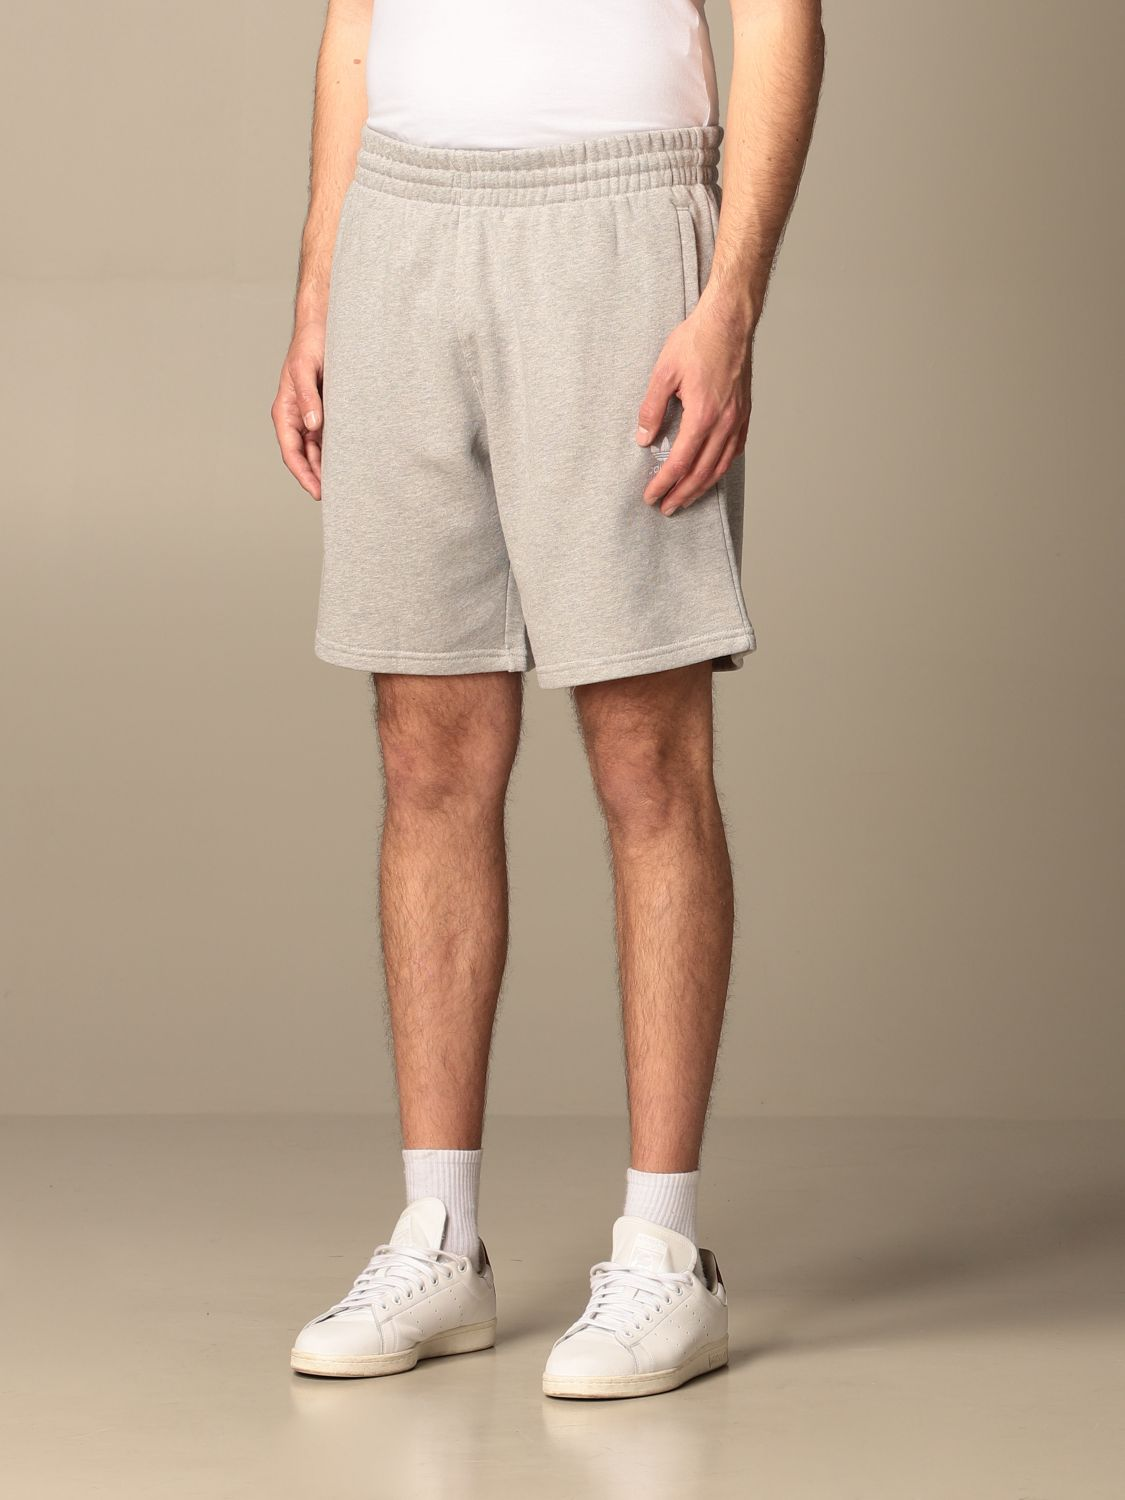 Short Adidas Originals: Adidas Originals jogging shorts with logo grey 3